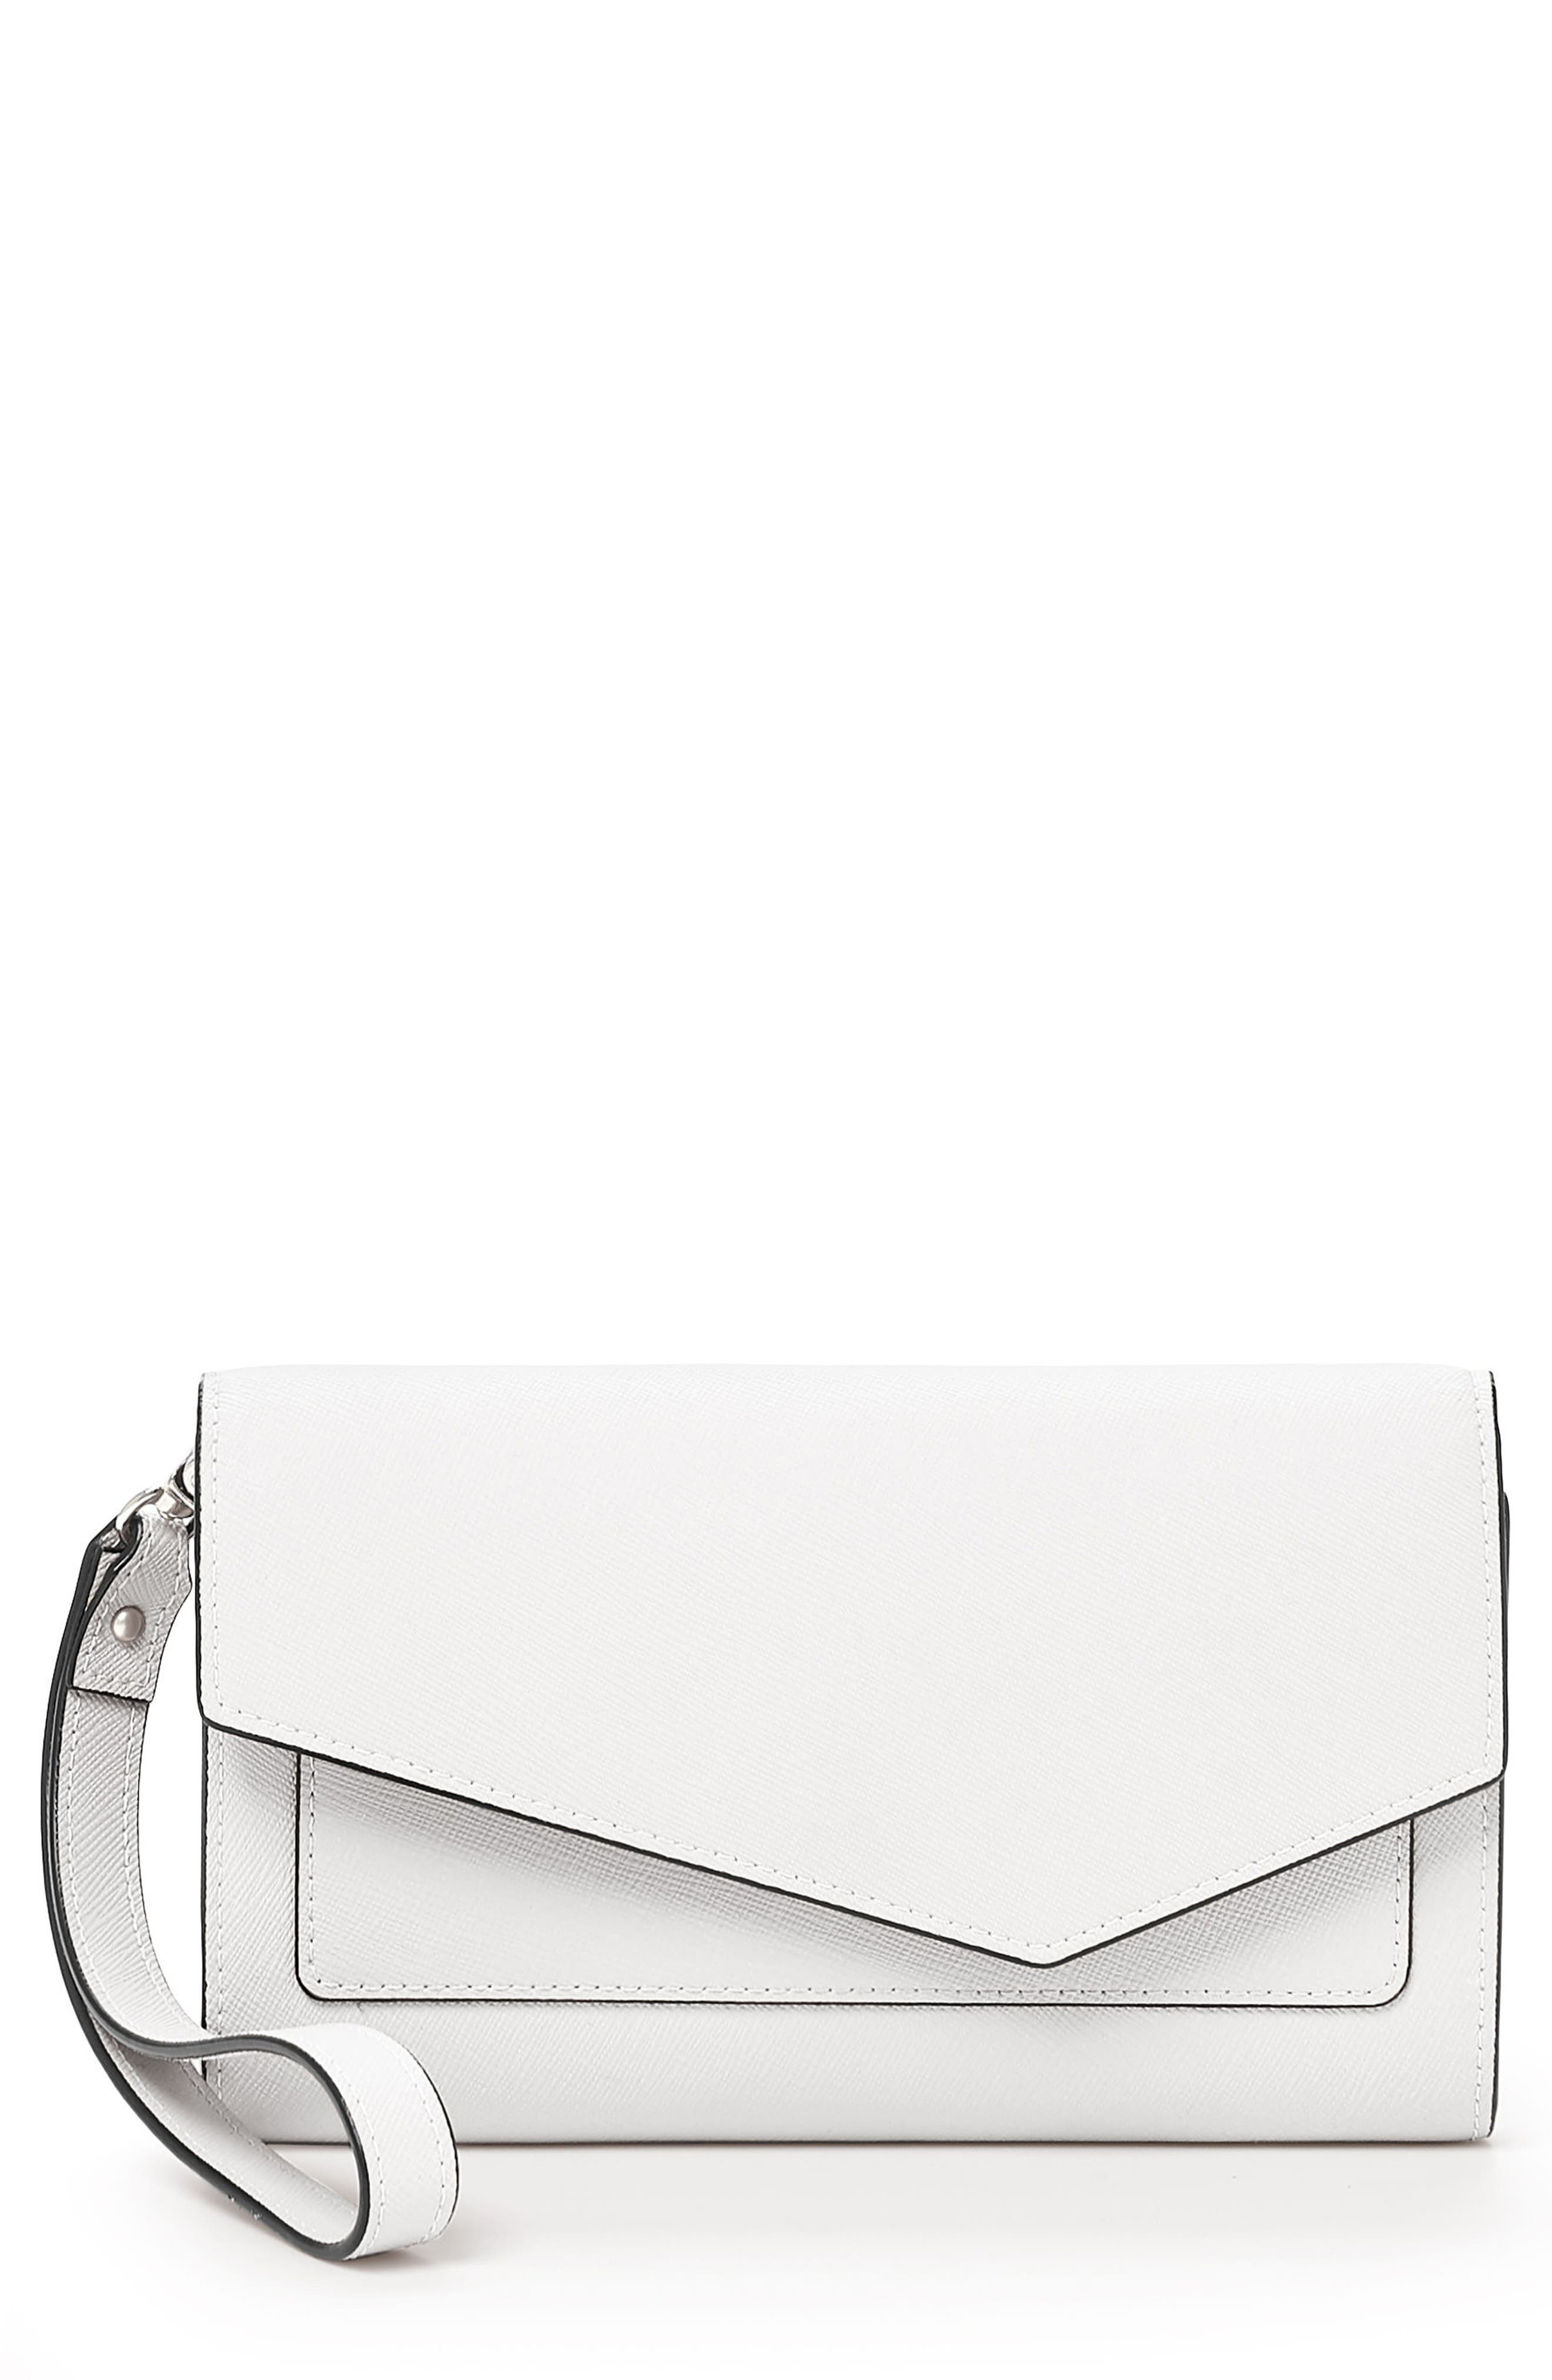 Alternate Image 1 Selected - Botkier Cobble Hill Calfskin Leather Wallet